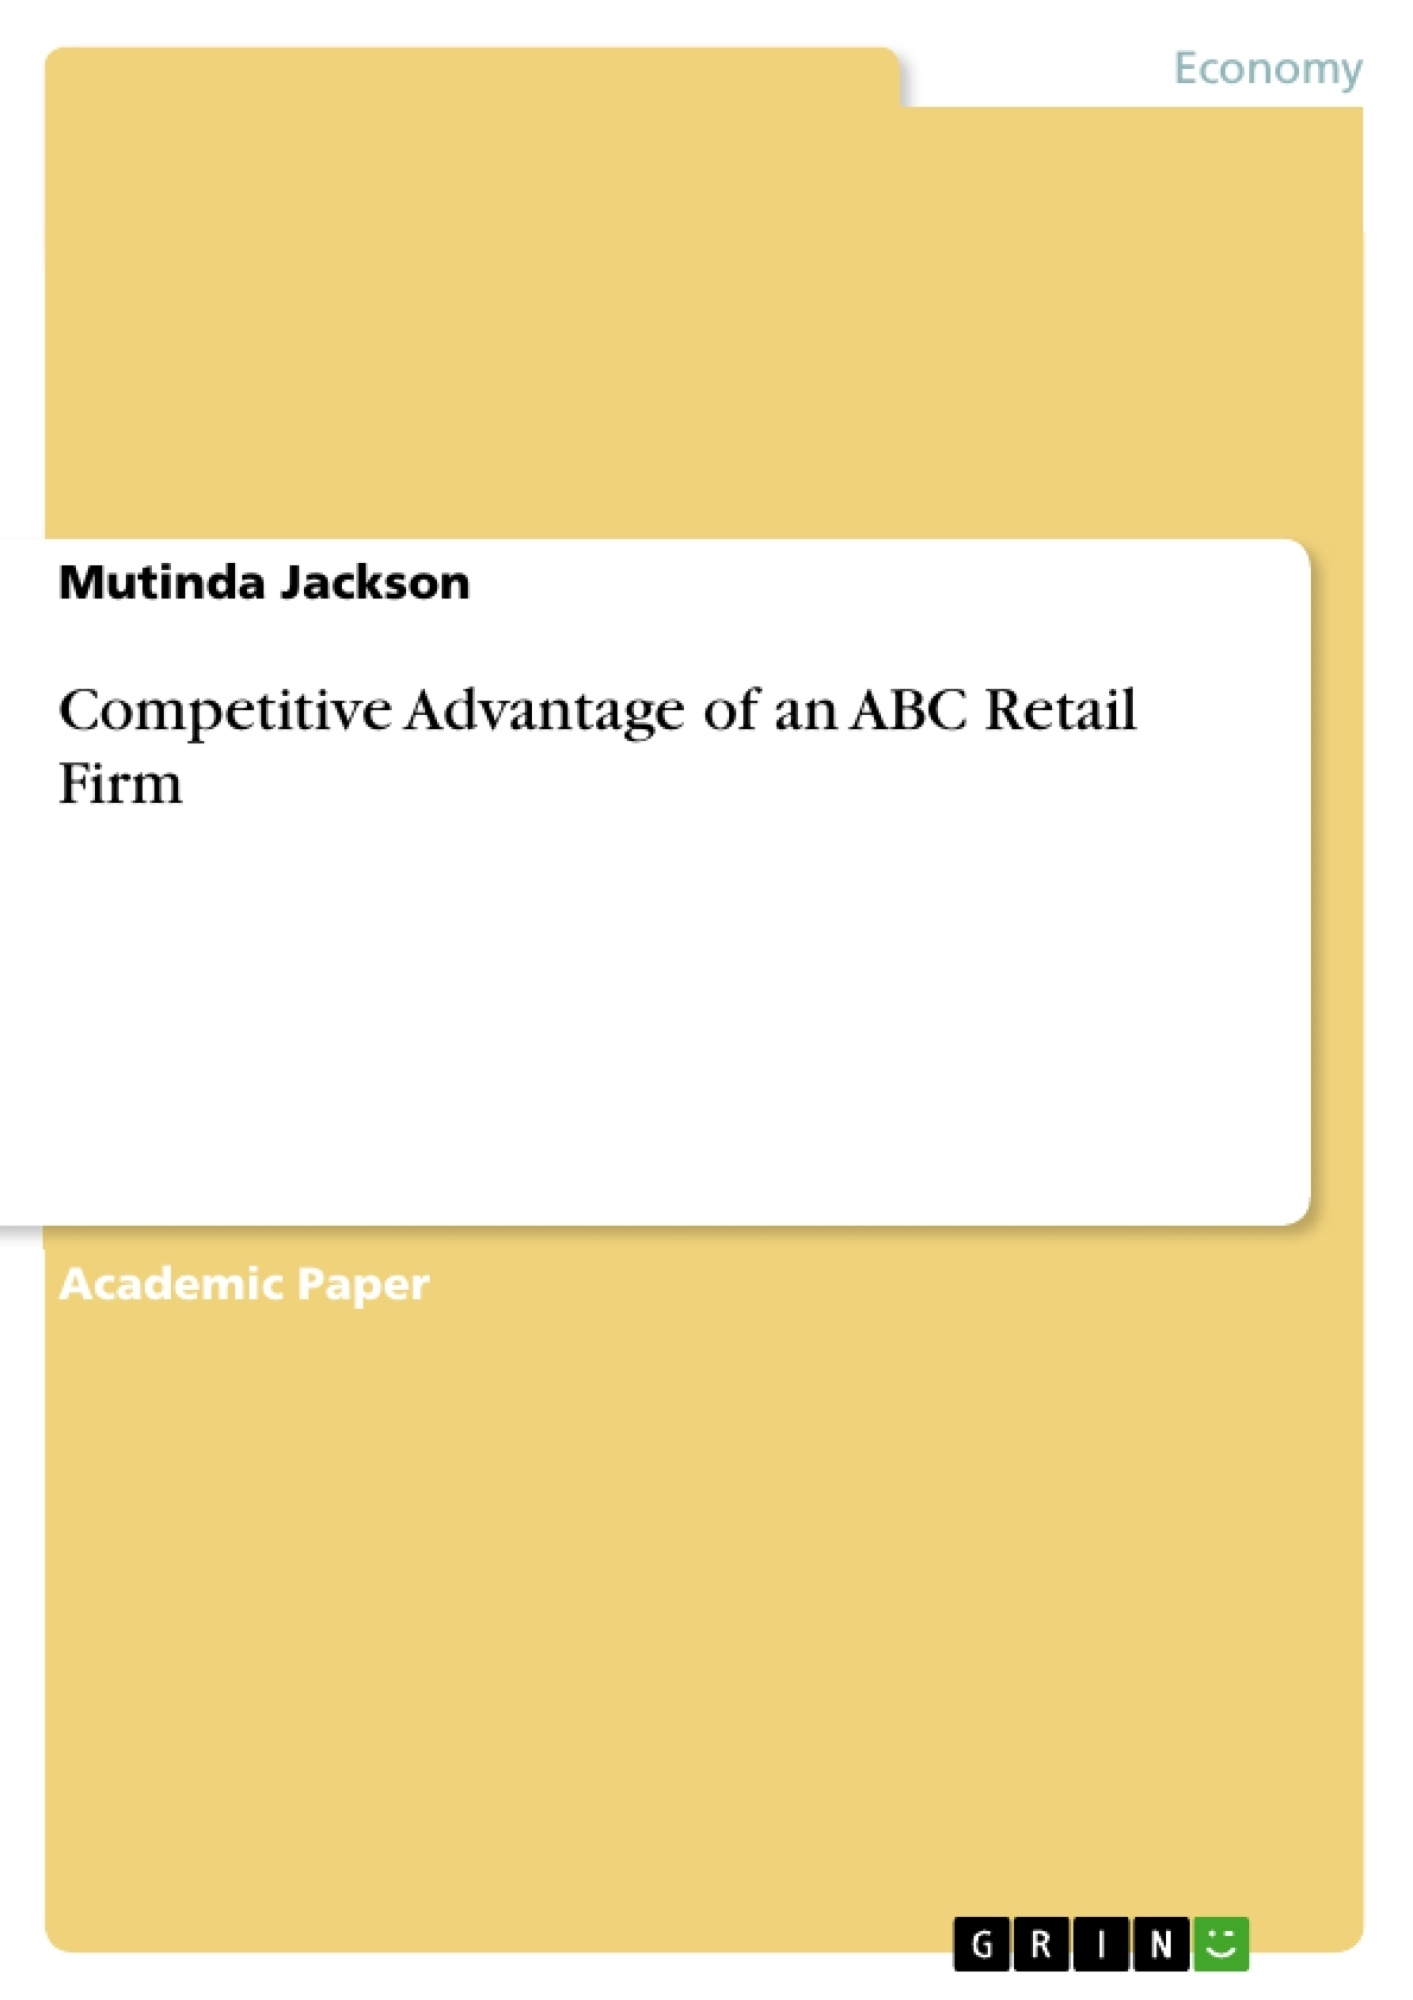 Title: Competitive Advantage of an ABC Retail Firm